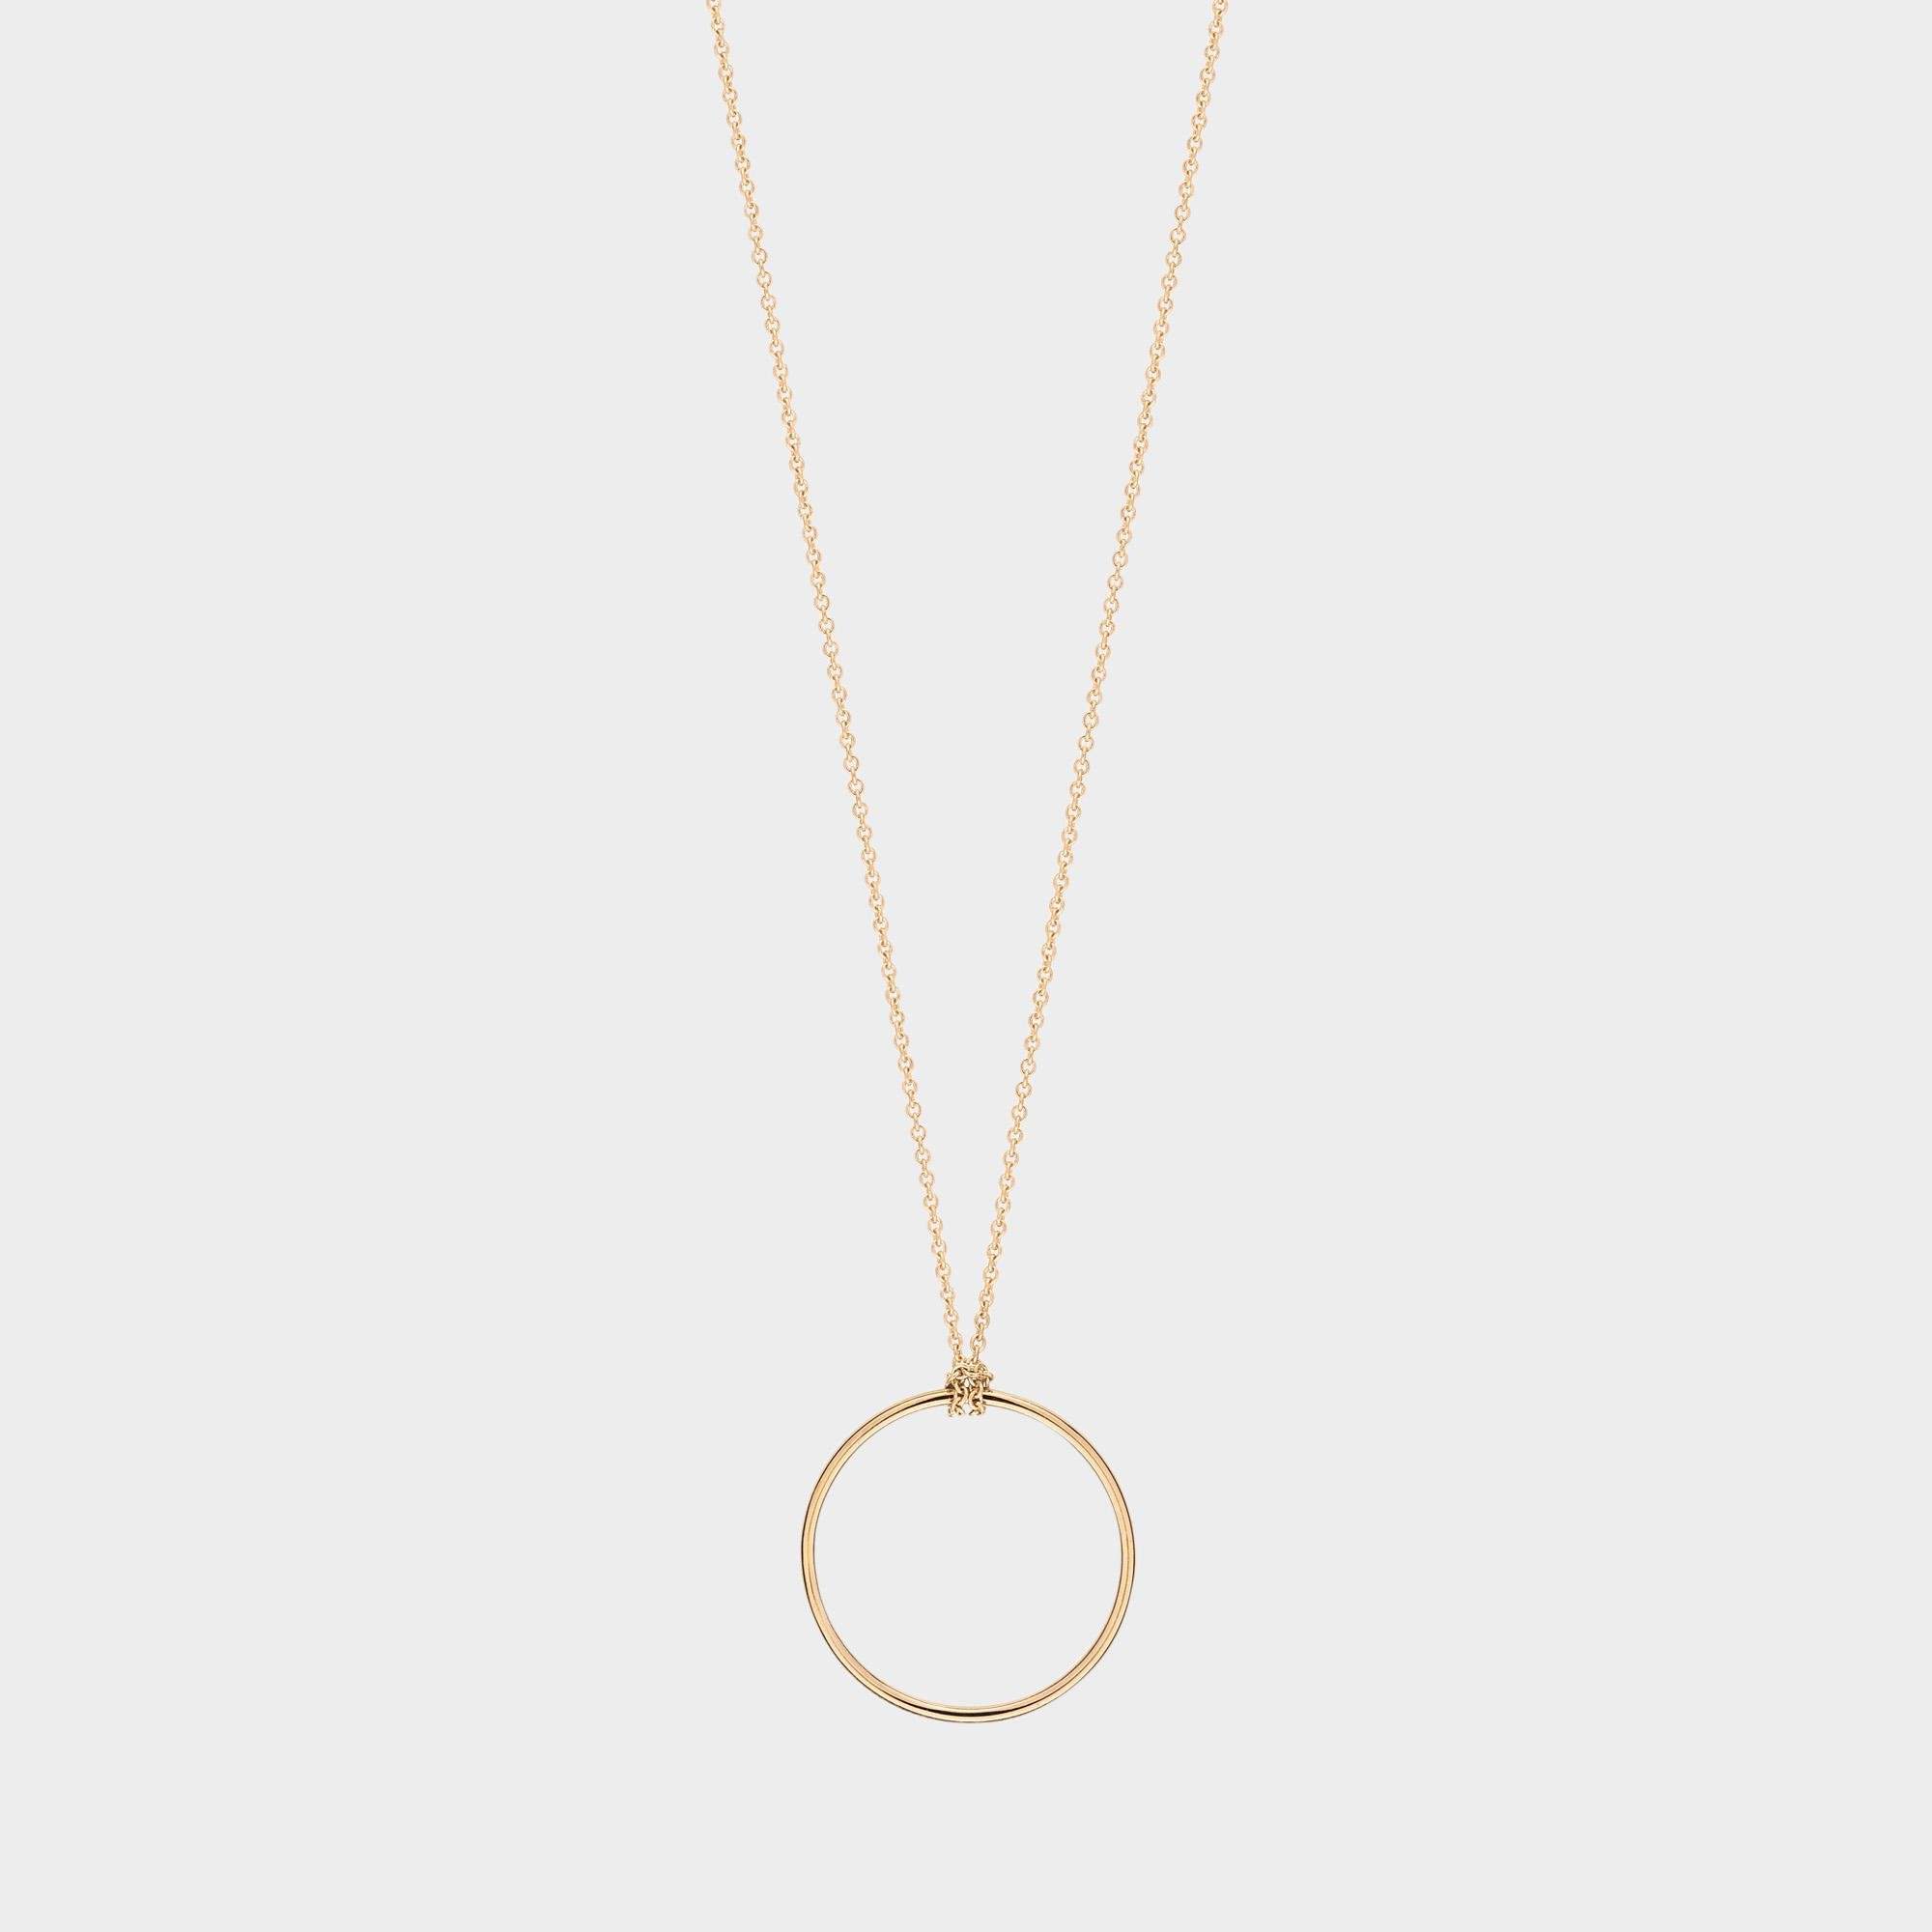 Ginette NY bar necklace - Yellow & Orange srUBXLKvMC